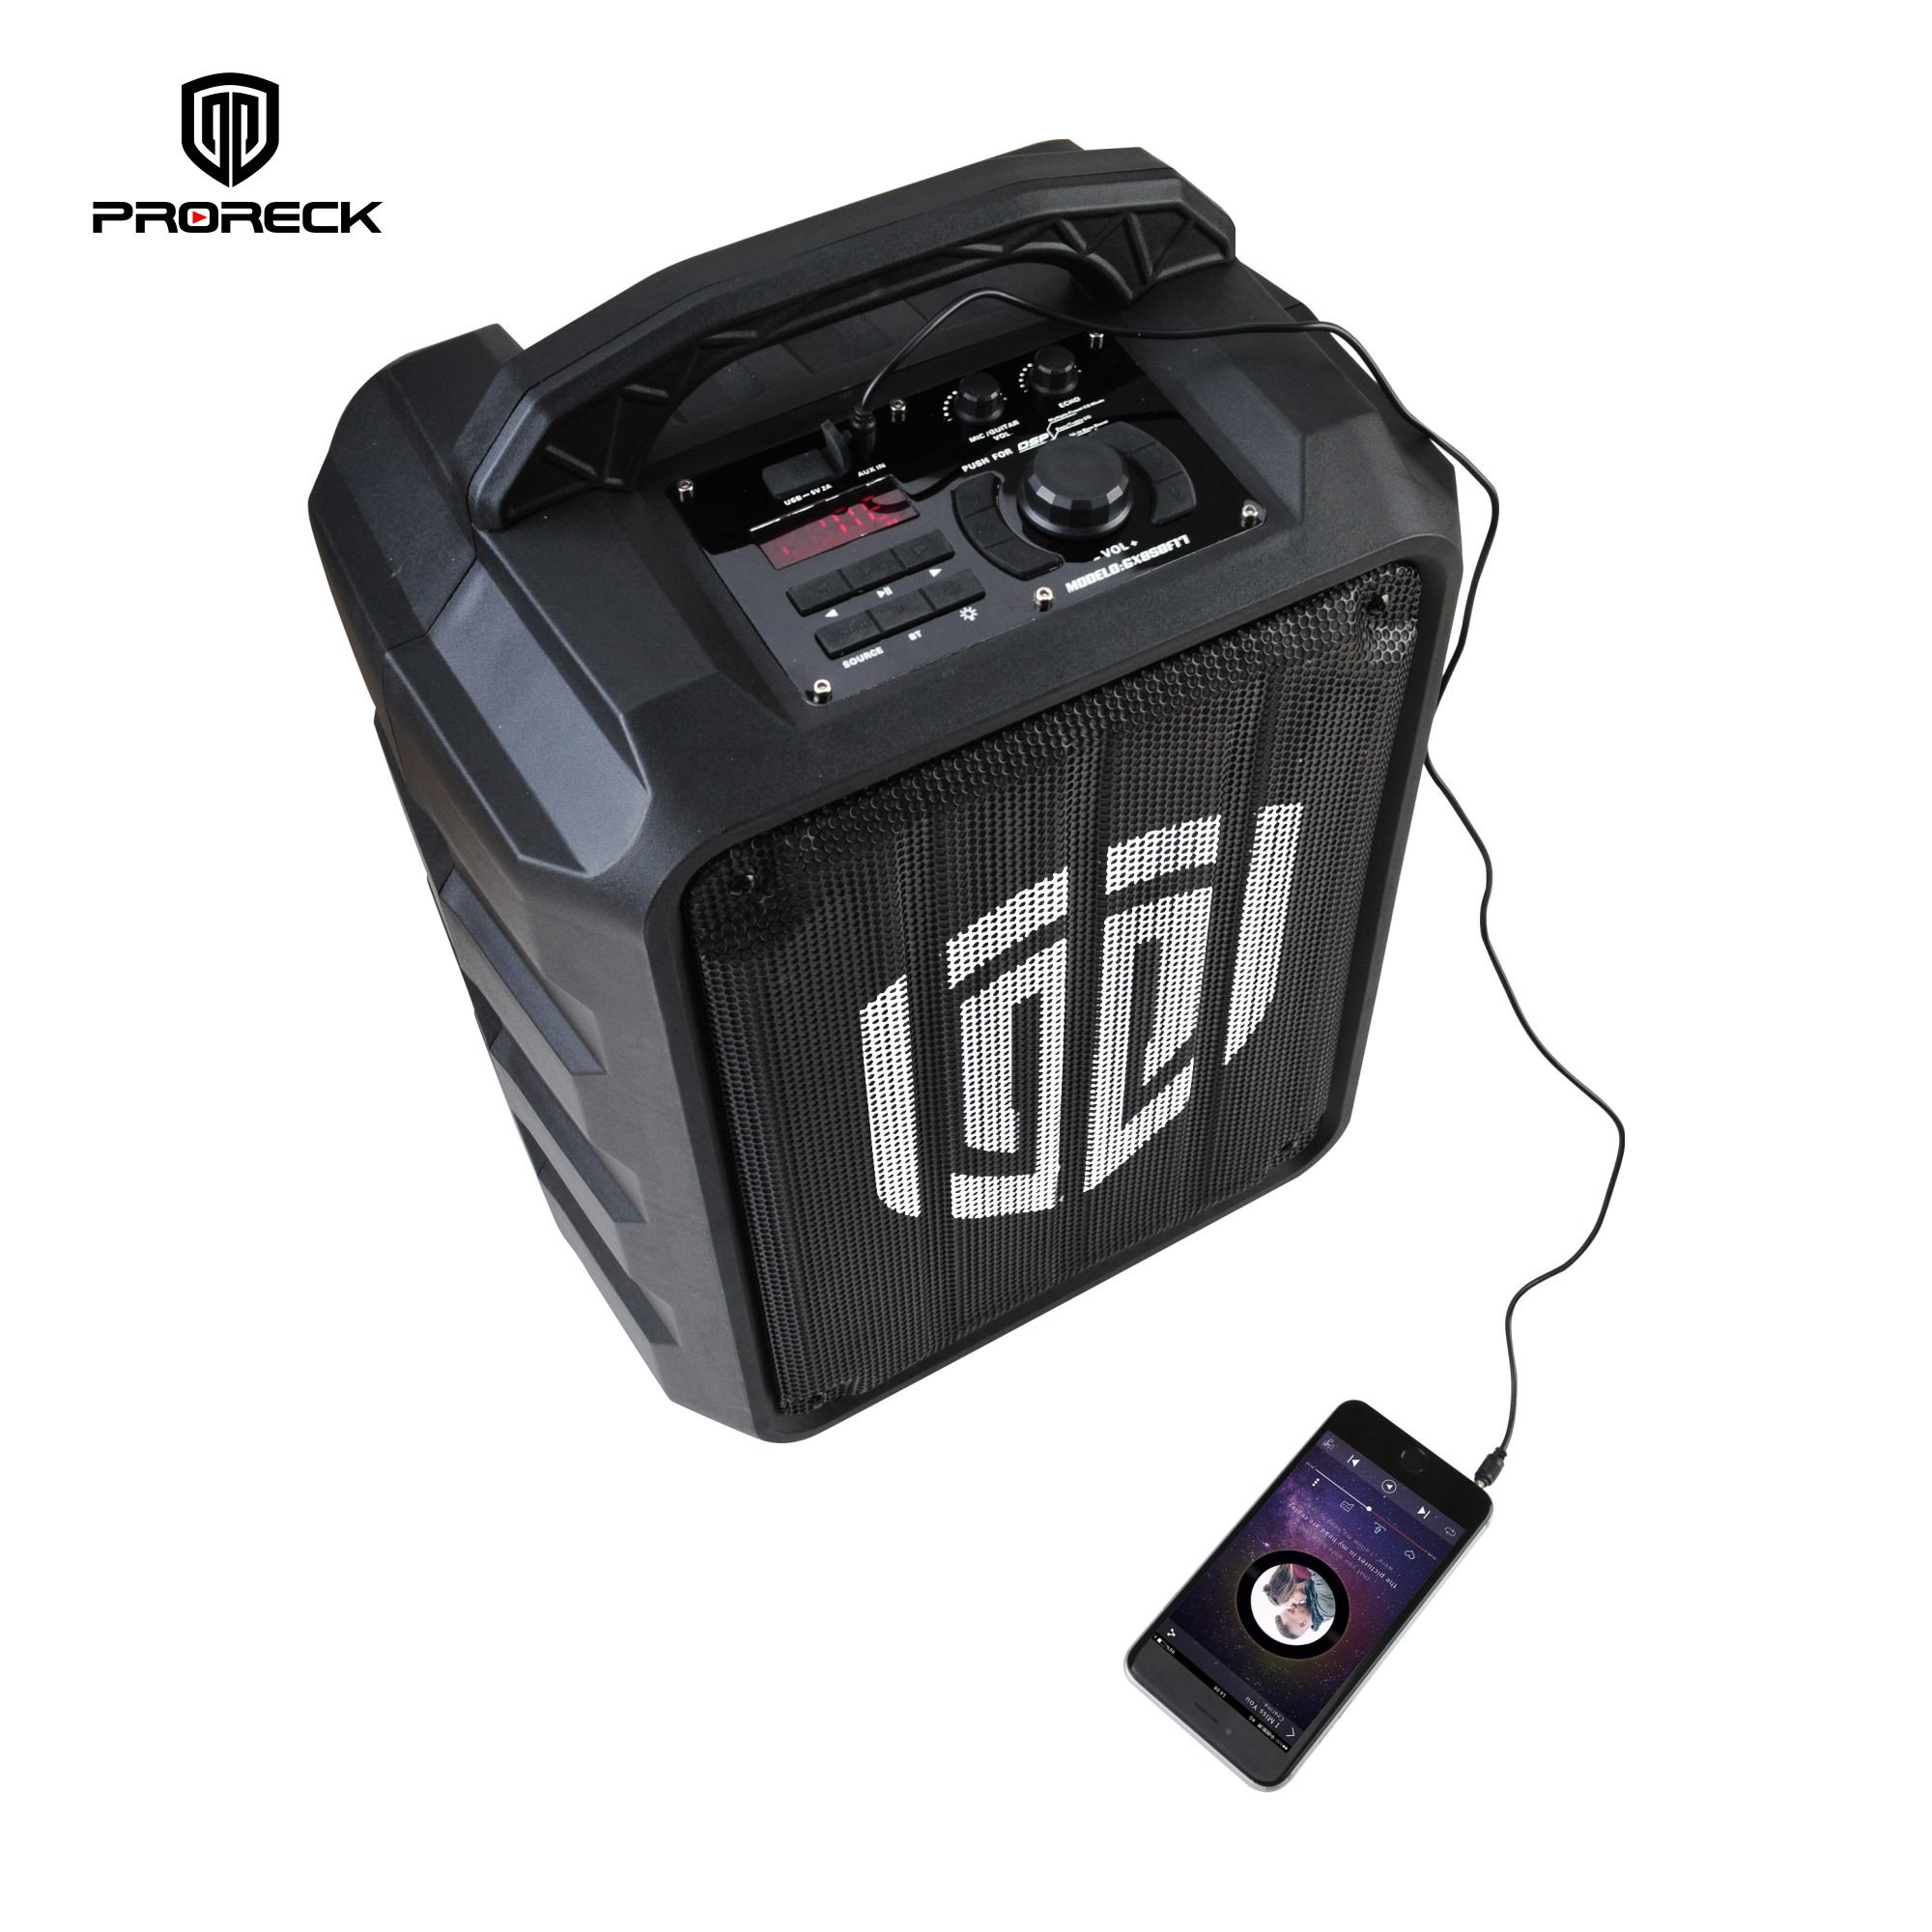 PRORECK Portable Speaker 8 Inch 2-Way Rechargeable Powered Dj/PA System with Wired Microphone LED Lights Function Bluetooth/USB Drive/FM Radio/Remote Control(FREEDOM 8) by PRORECK